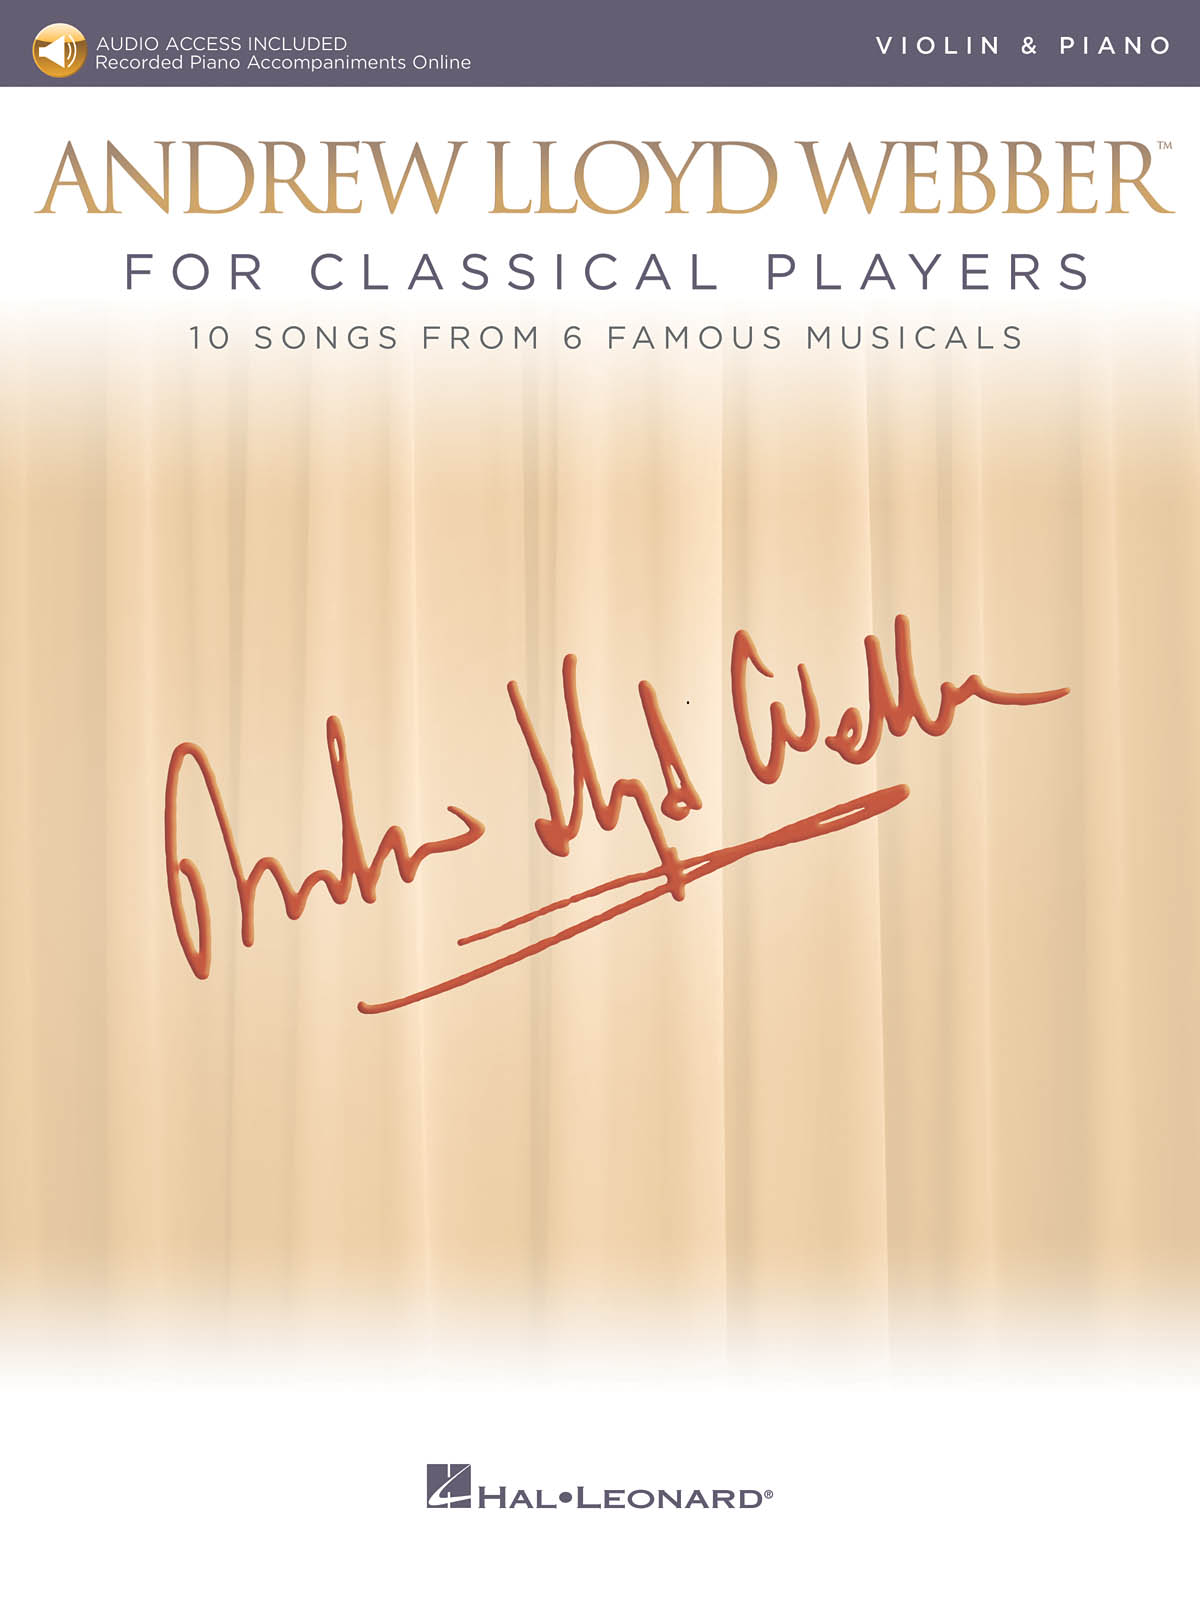 Andrew Lloyd Webber: Andrew Lloyd Webber for Classical Players: Violin and